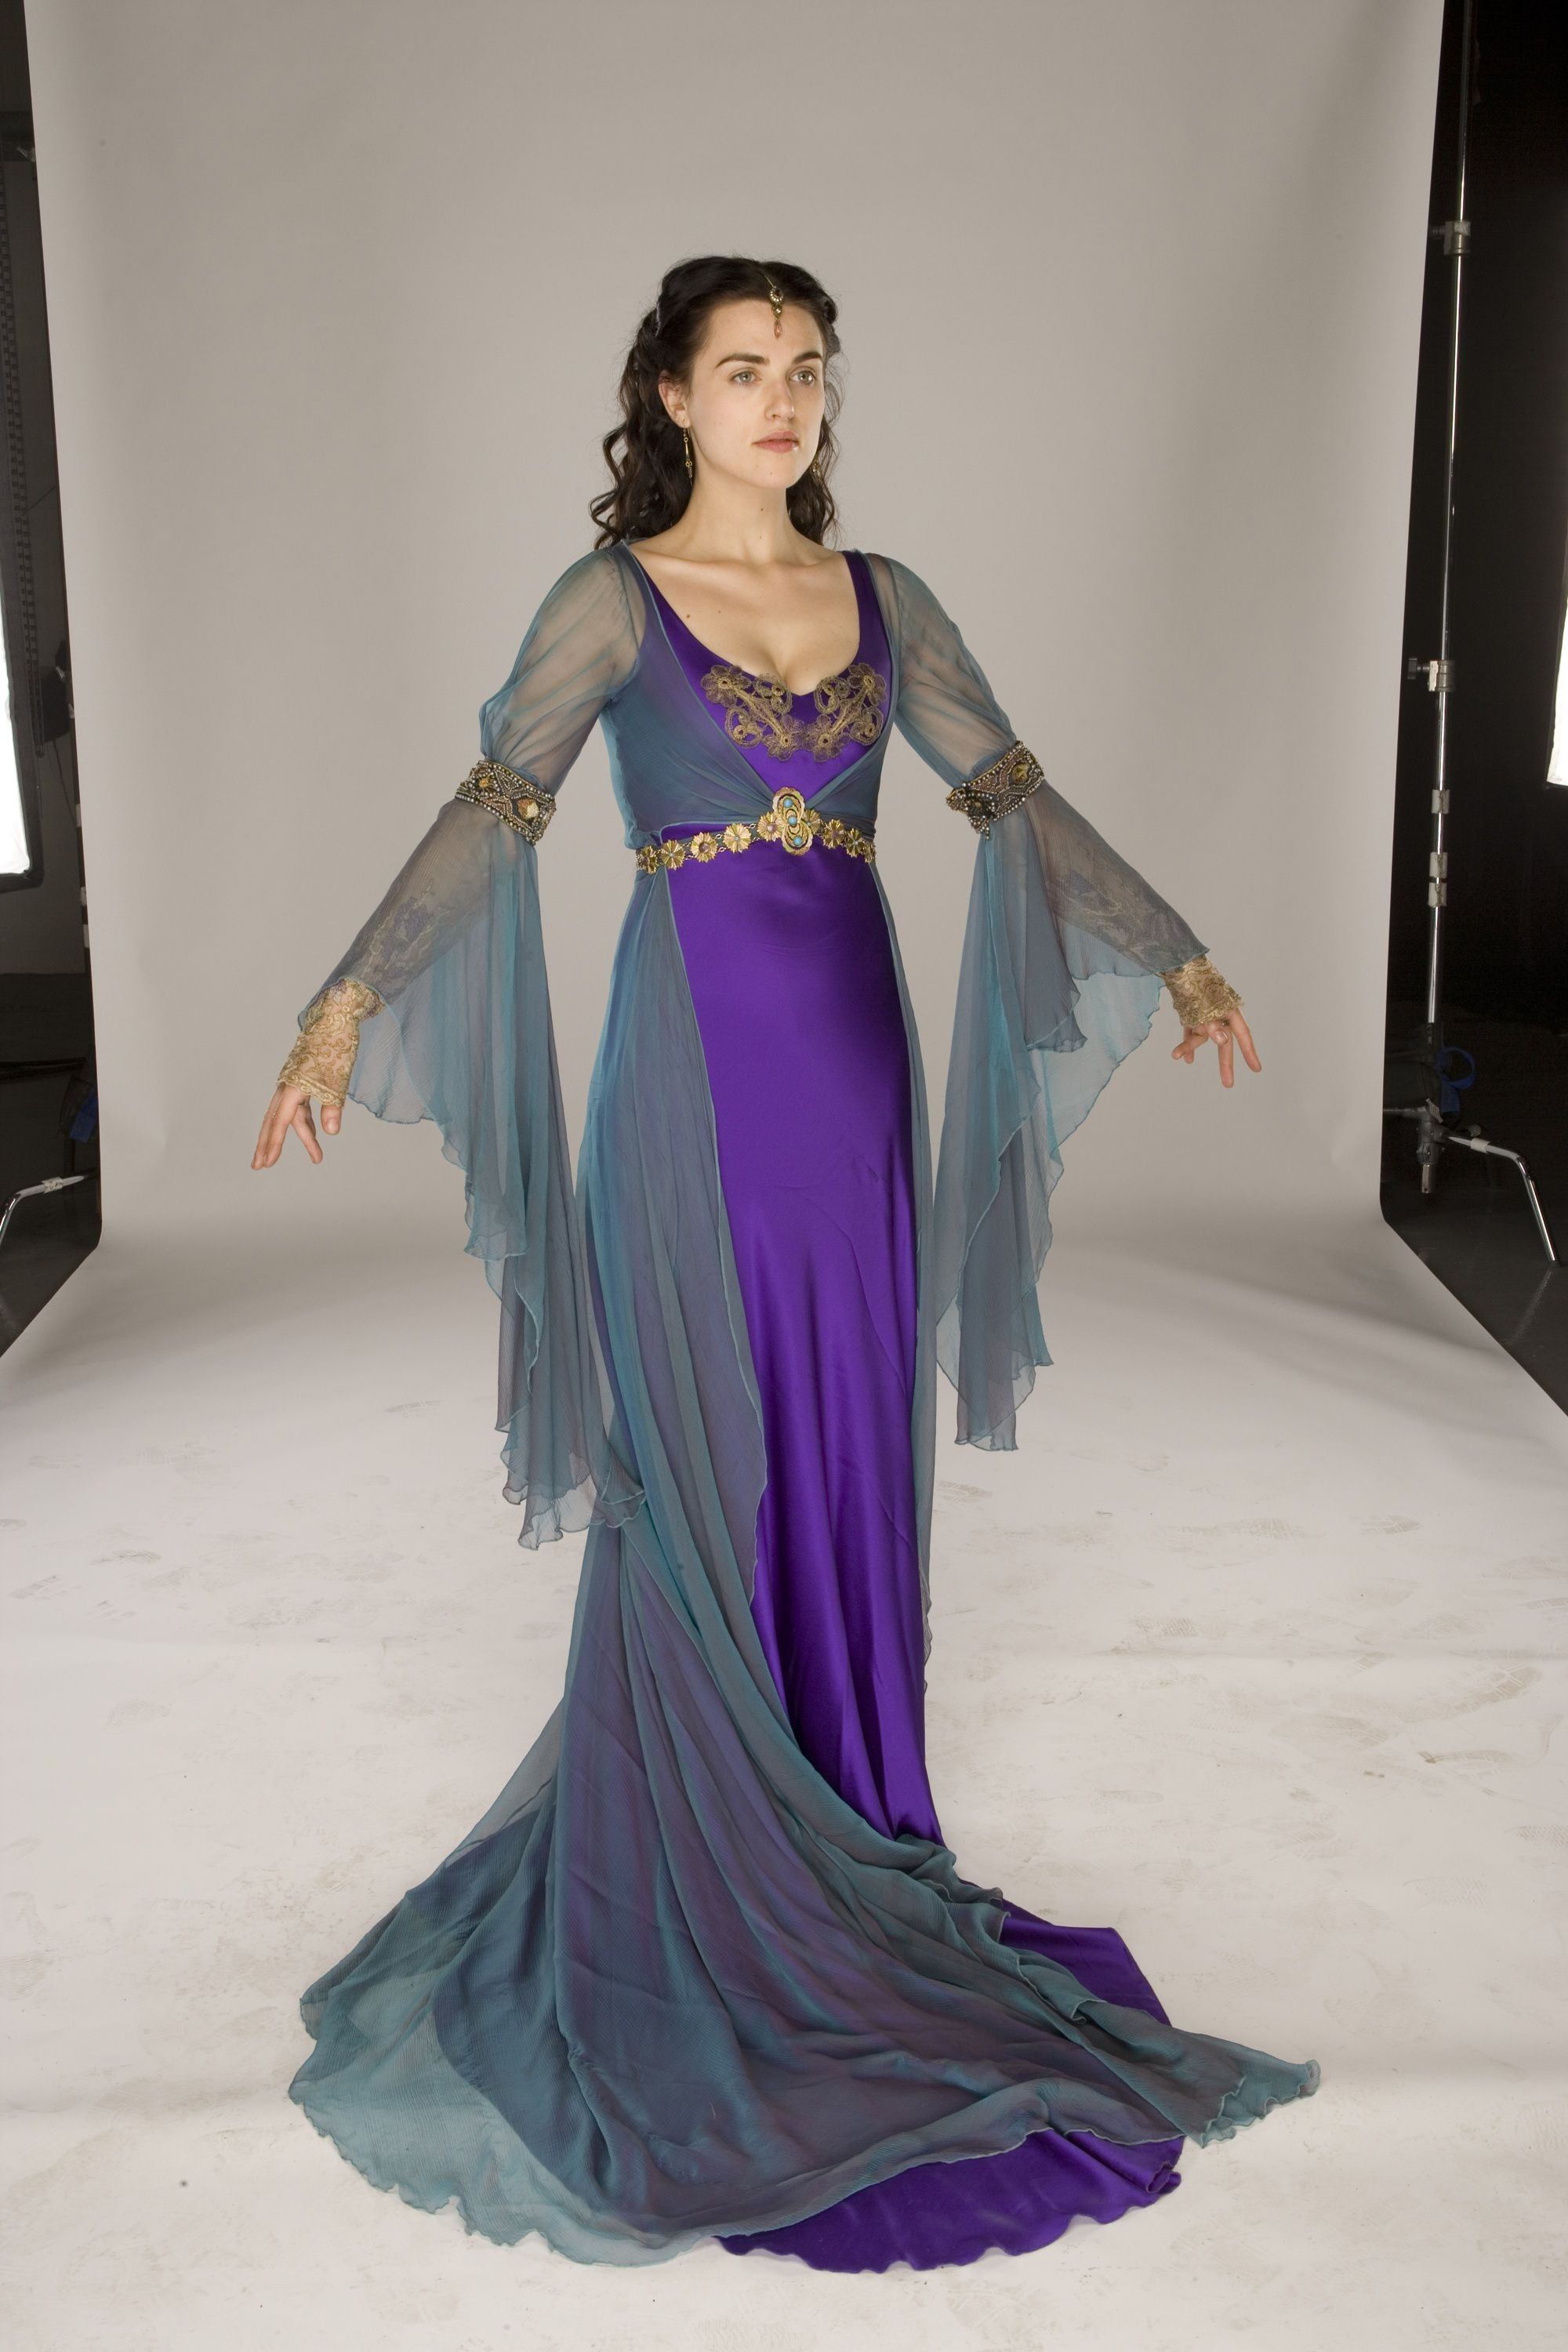 Merlin Photoshoot For Morgana Portrayed By Katie Mcgrath Fantasy Dress Costume Design